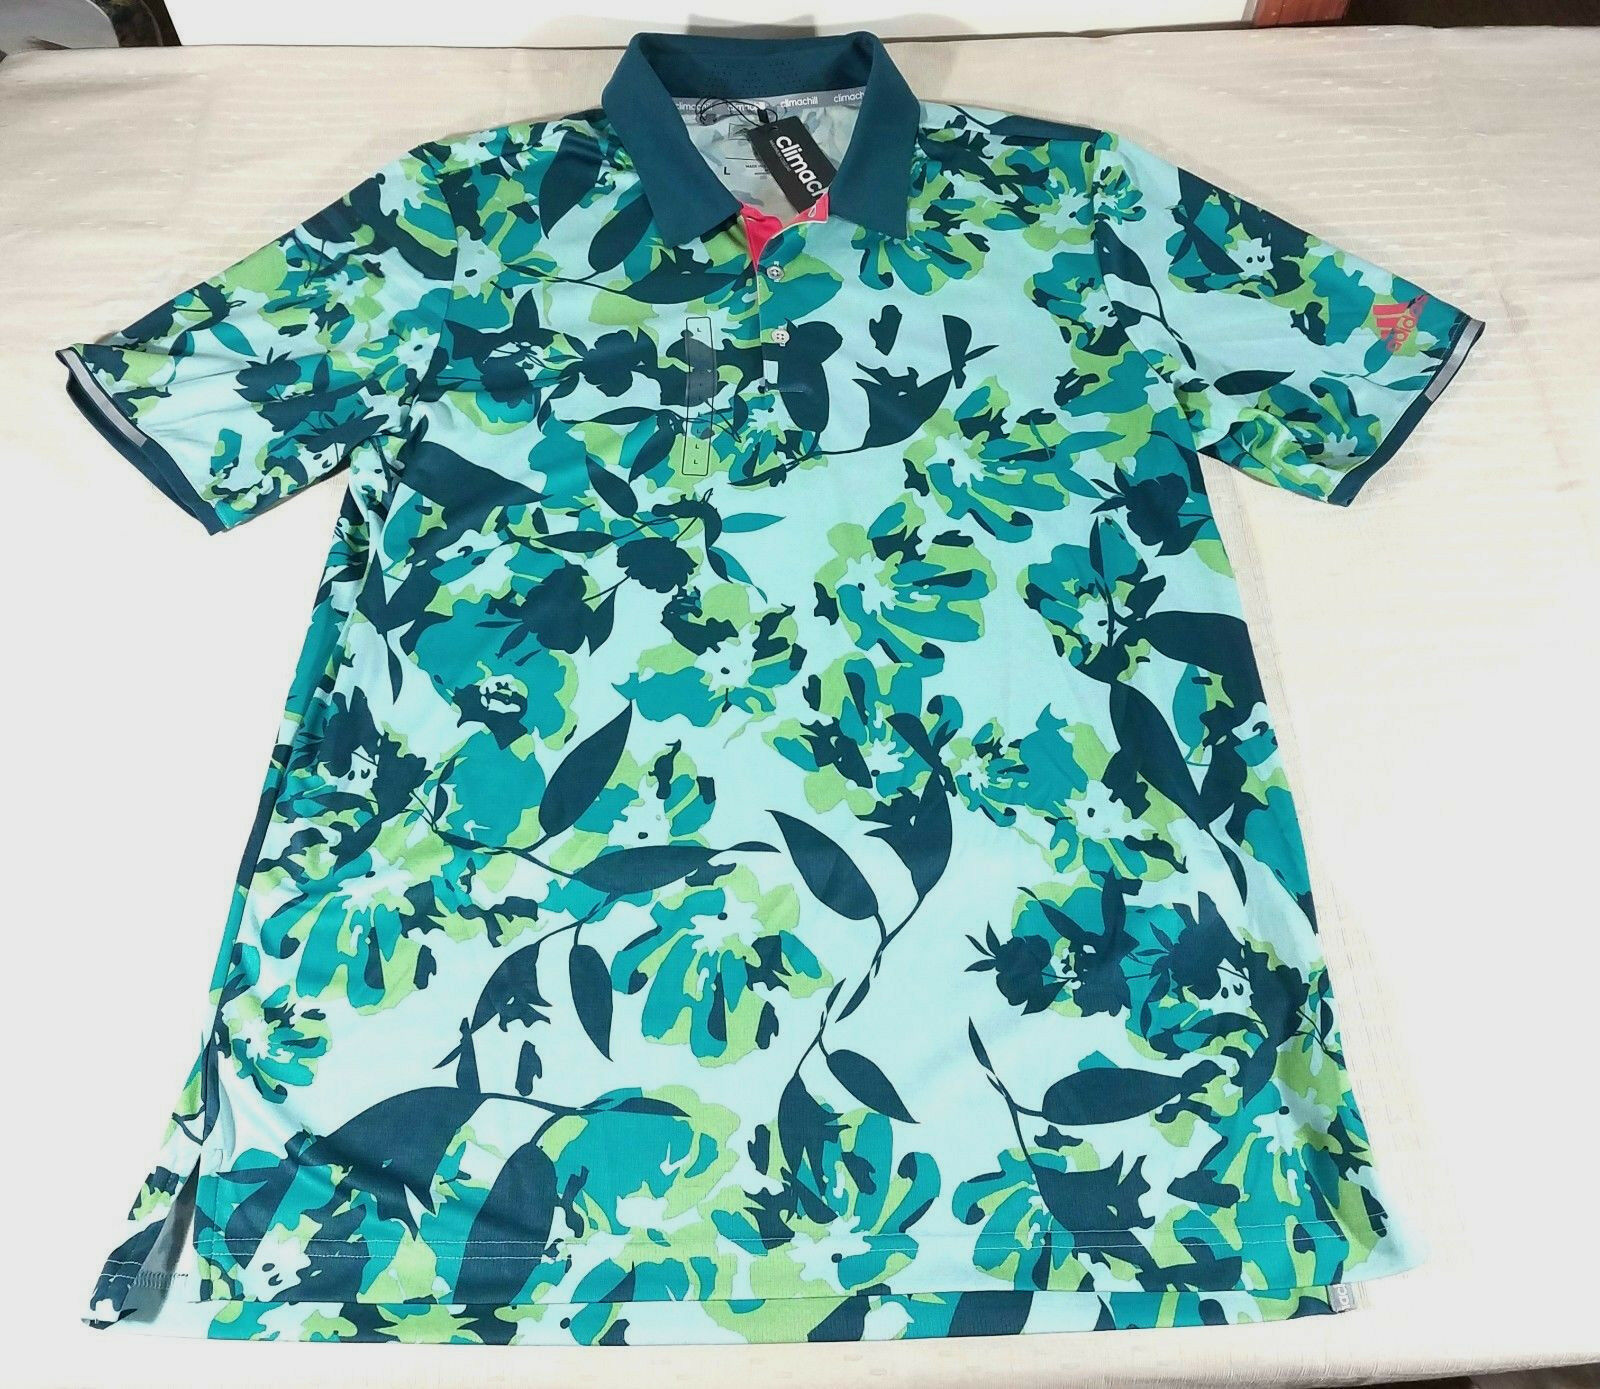 9f5358357caf4 Adidas Golf Climachill Floral Stretch Polo and 27 similar items